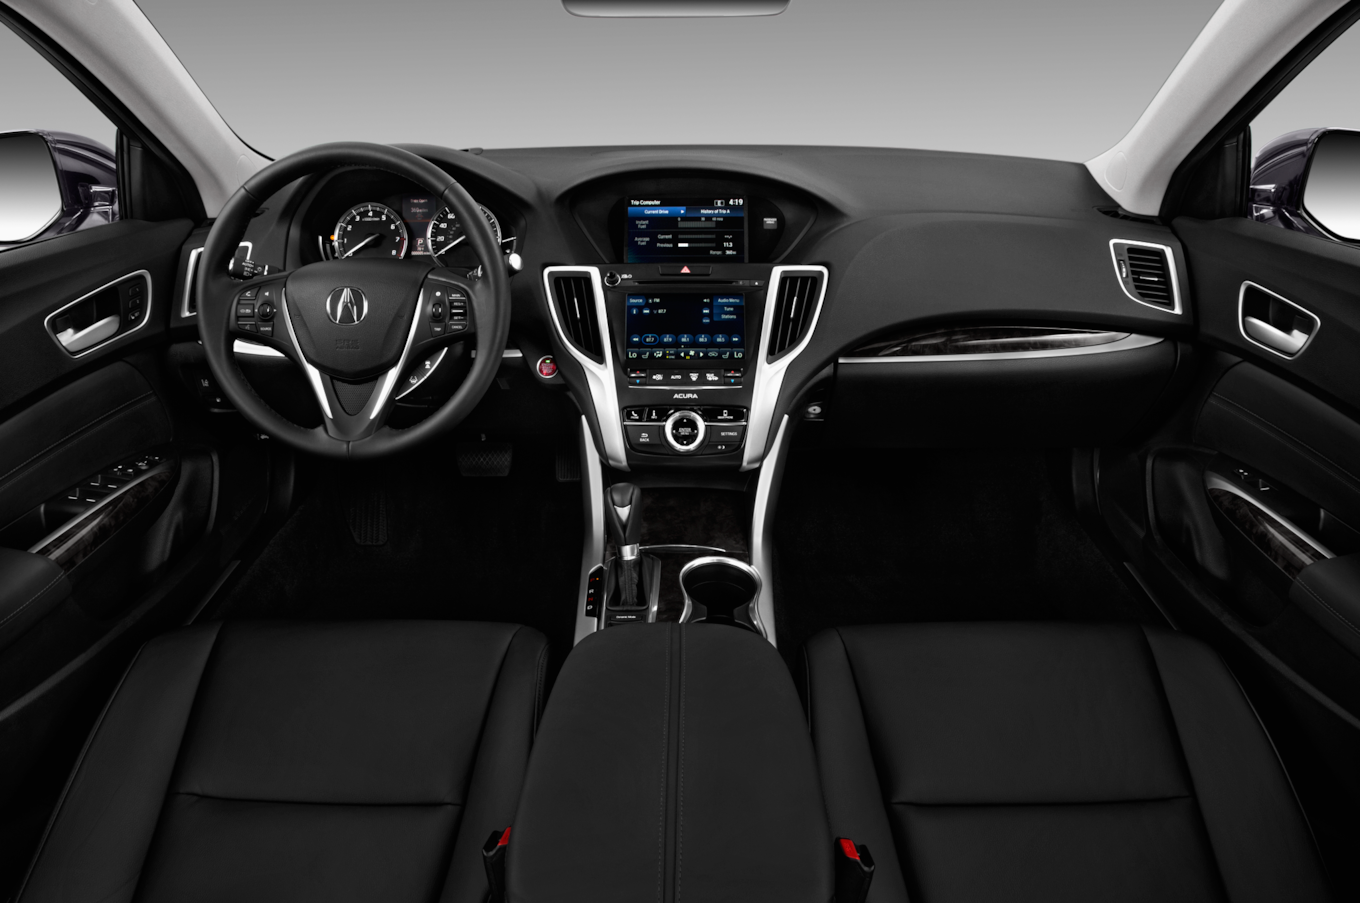 78 Best Review 2019 Acura Tlx Interior for 2019 Acura Tlx